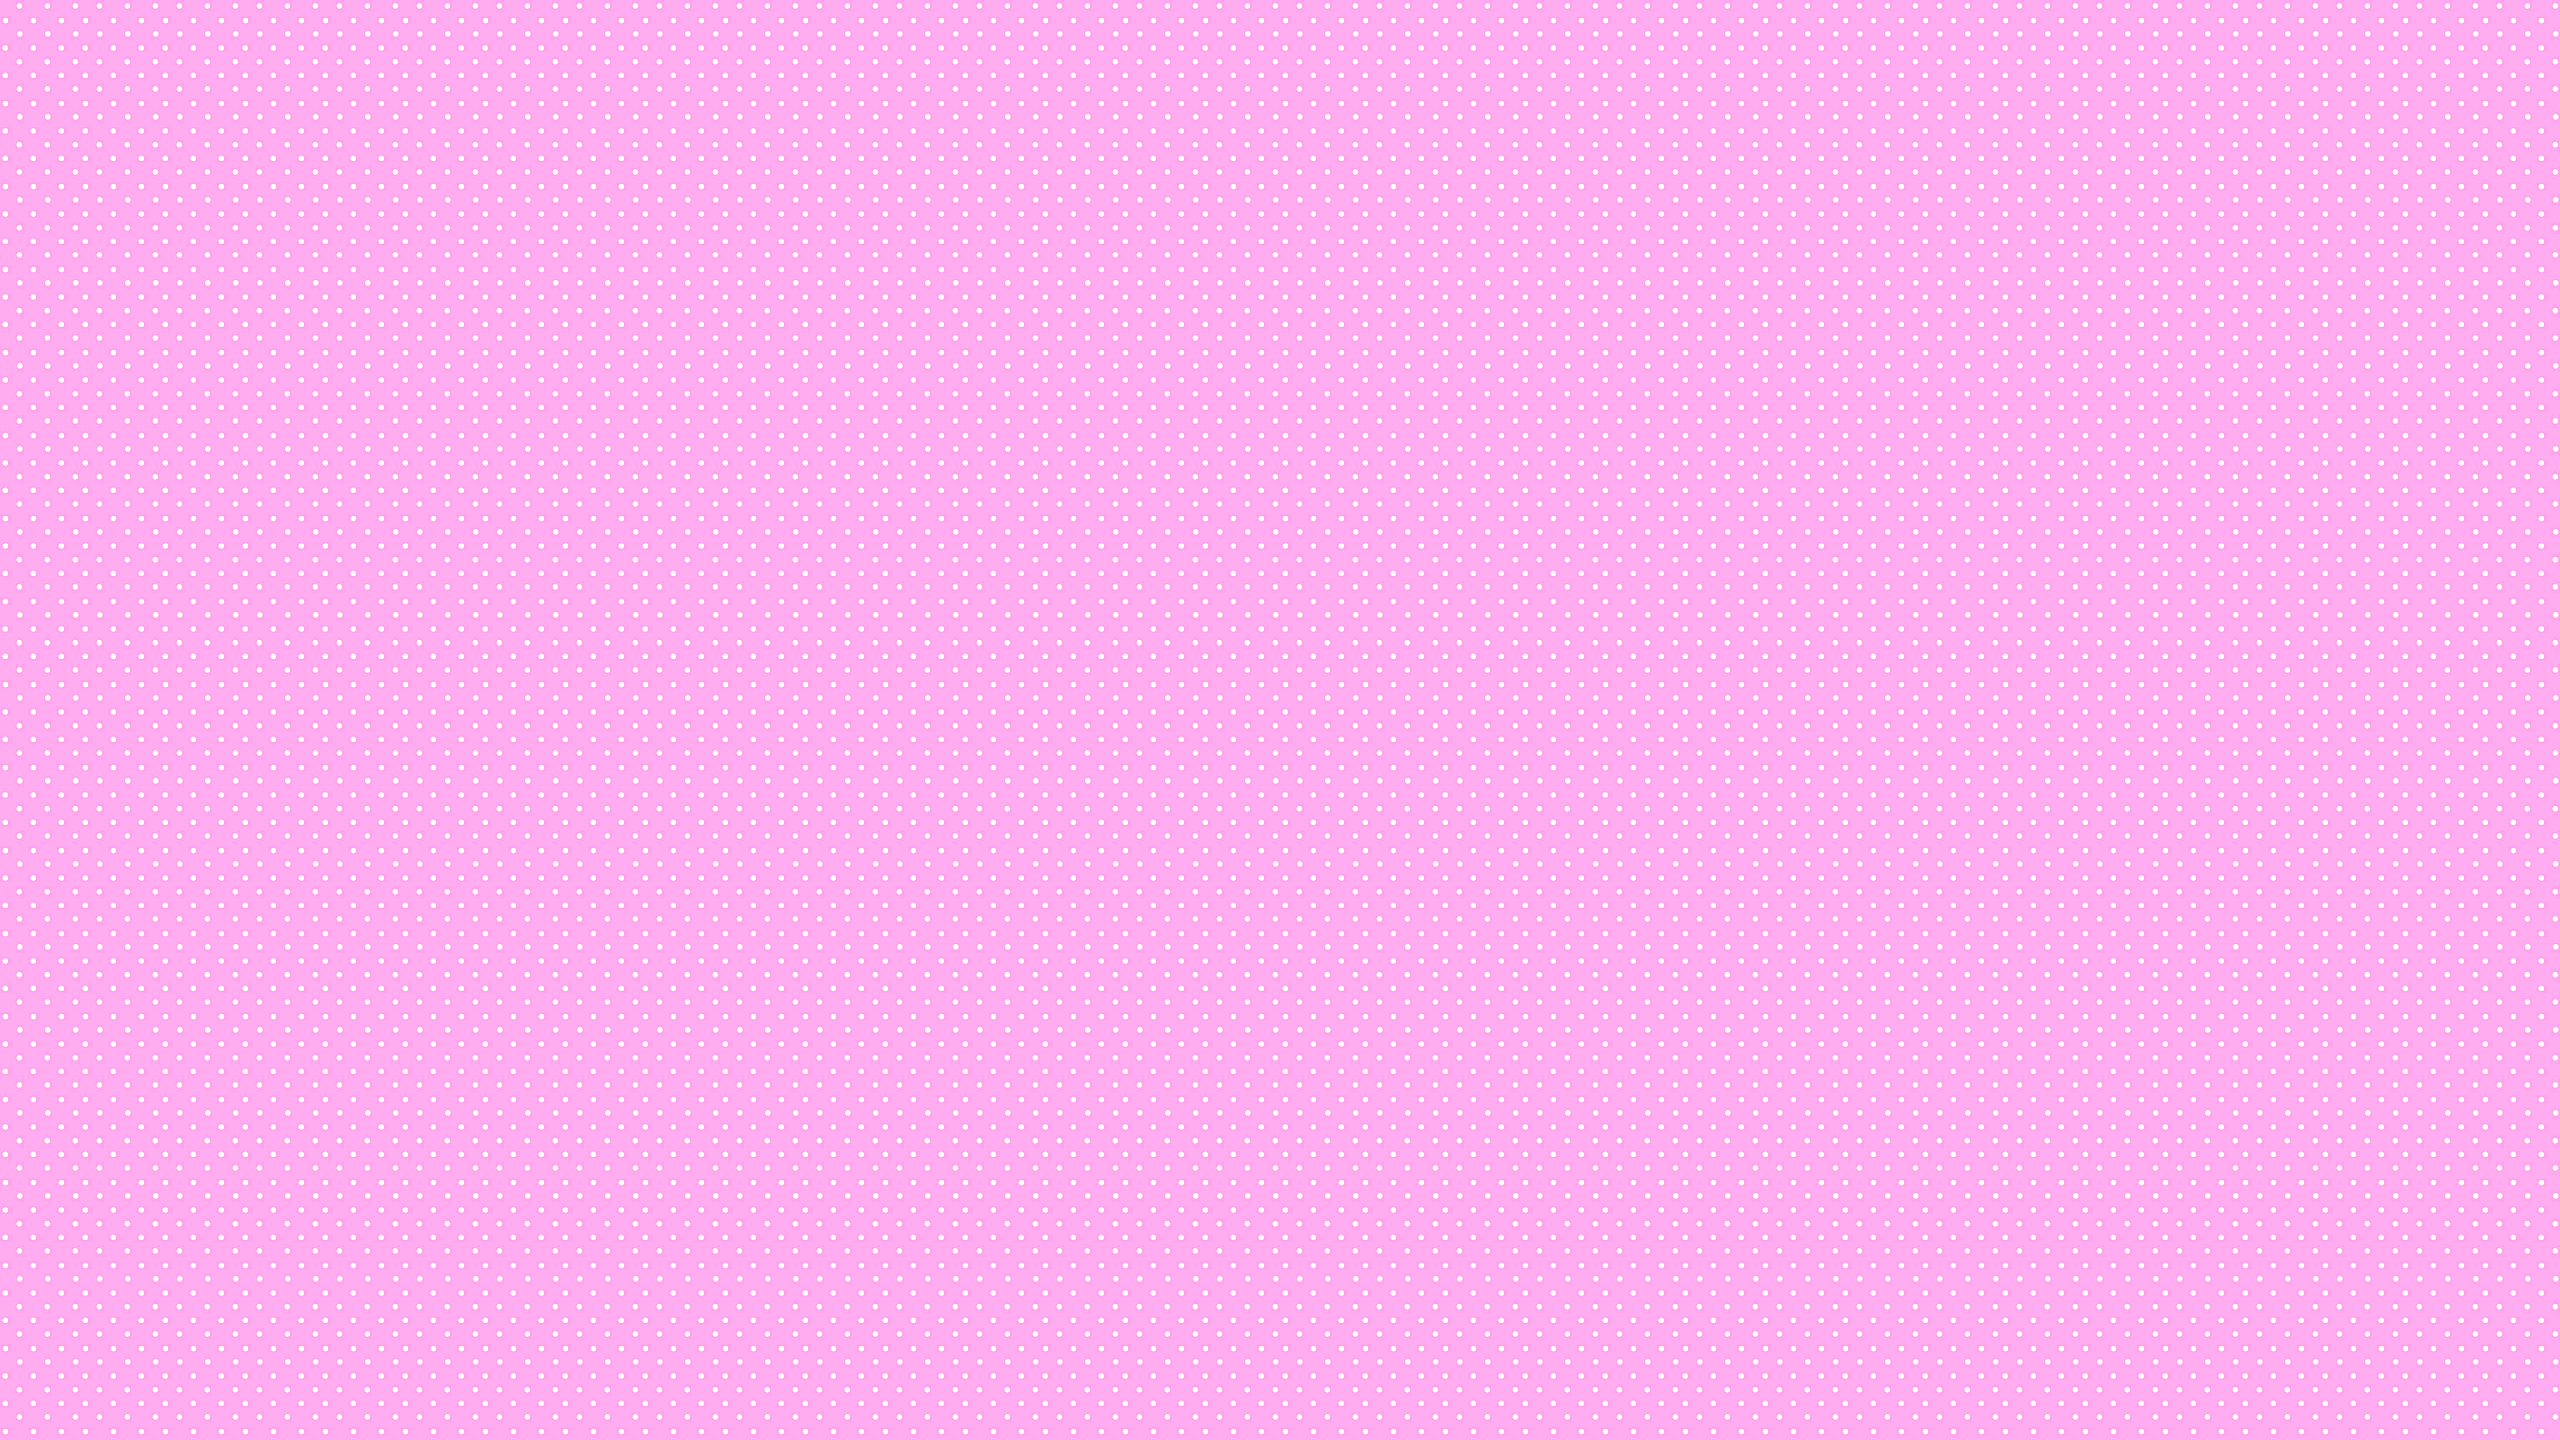 Wallpaper Pastel Polos Pink Polos Backgrounds Wallpaper Cave